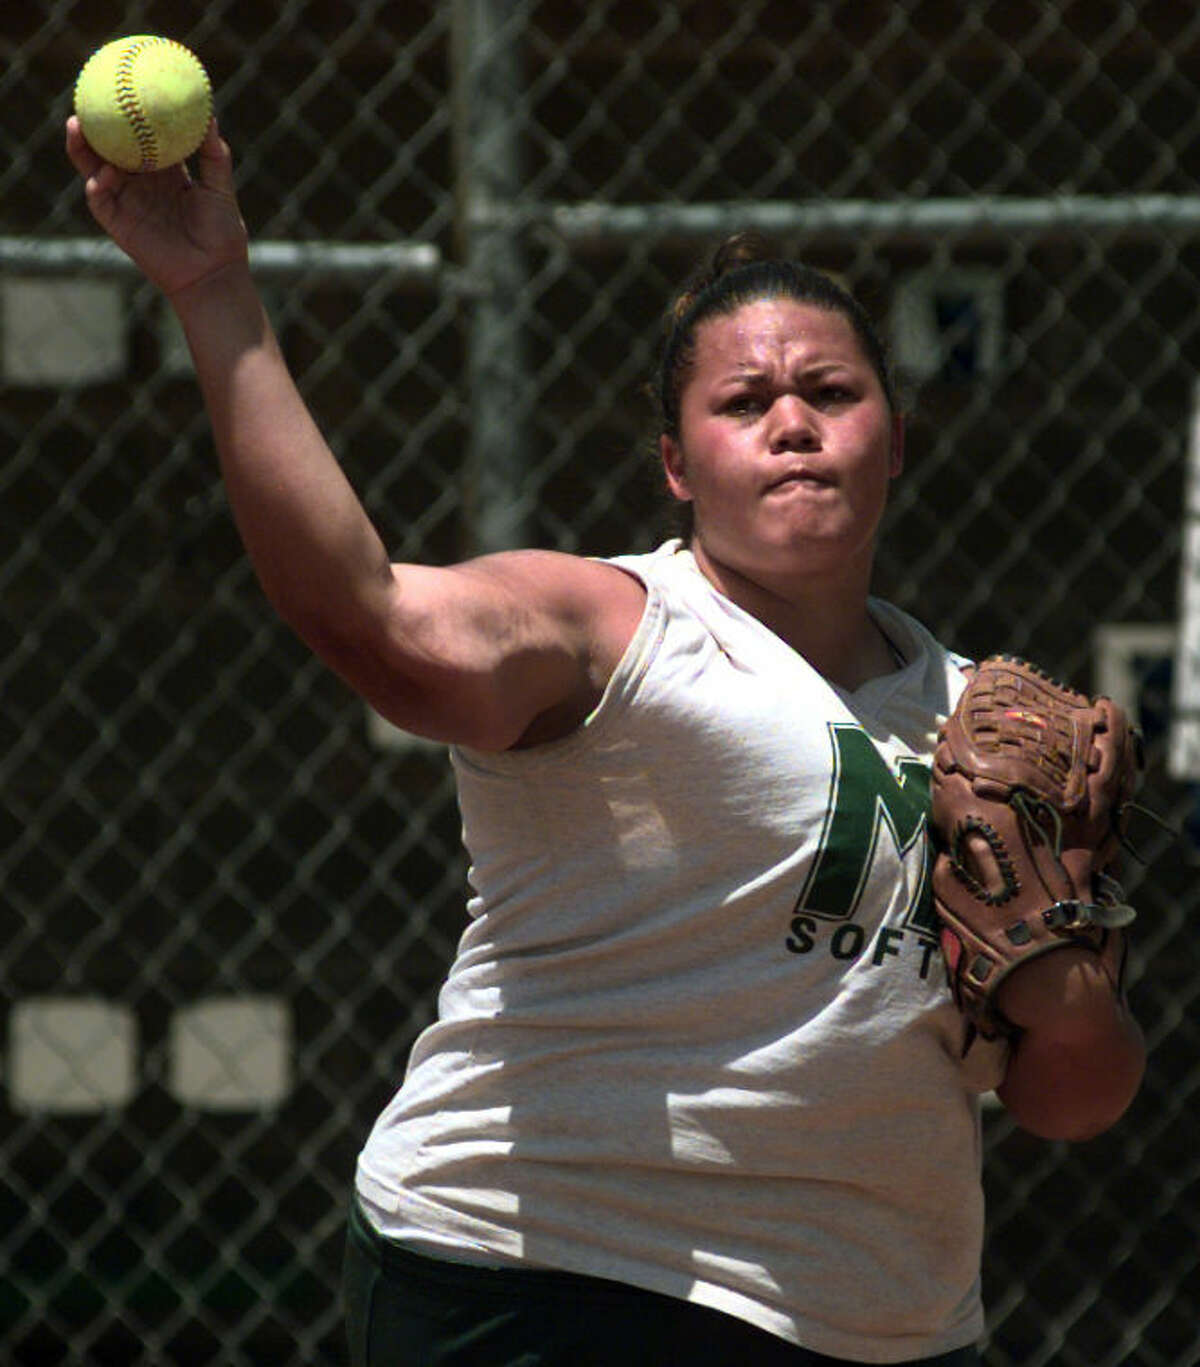 Tiala Tagaloa, seen here during her playing days at Midland College in 2001, was named the new softball coach at UTPB on Wednesday.Photo by Tim Fischer 5/1/01